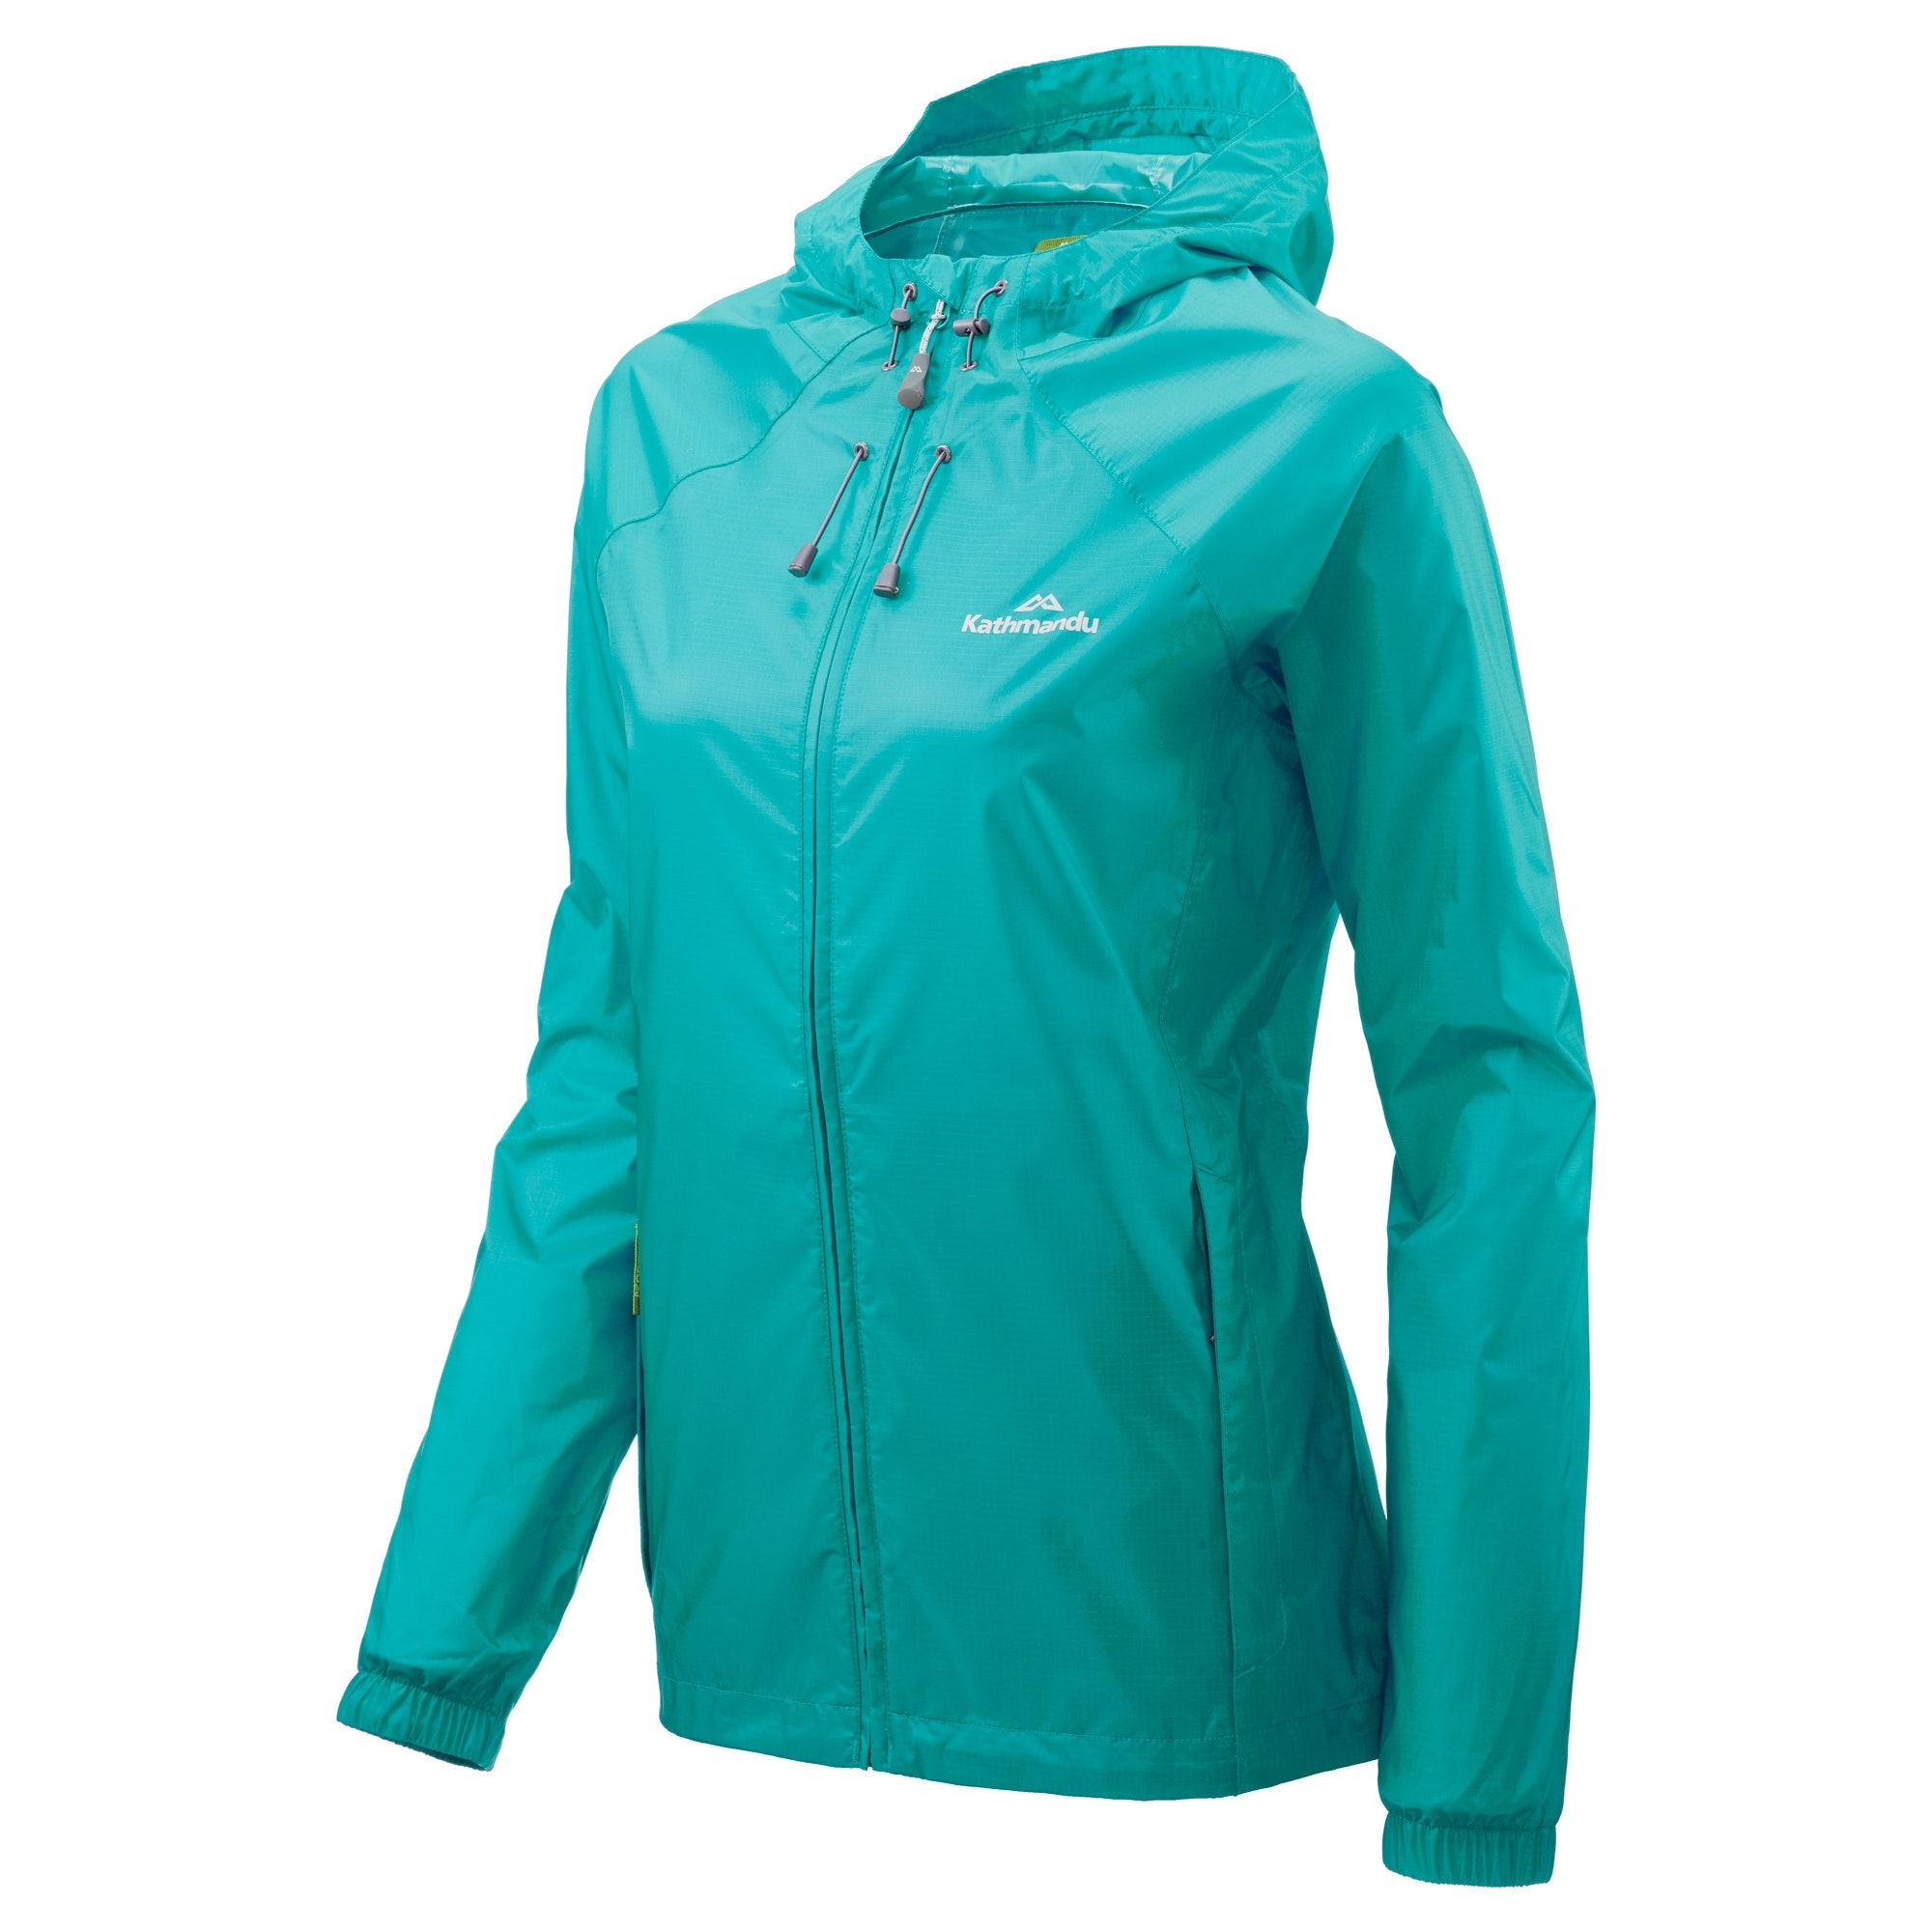 Teal Rain Jacket Jackets Review